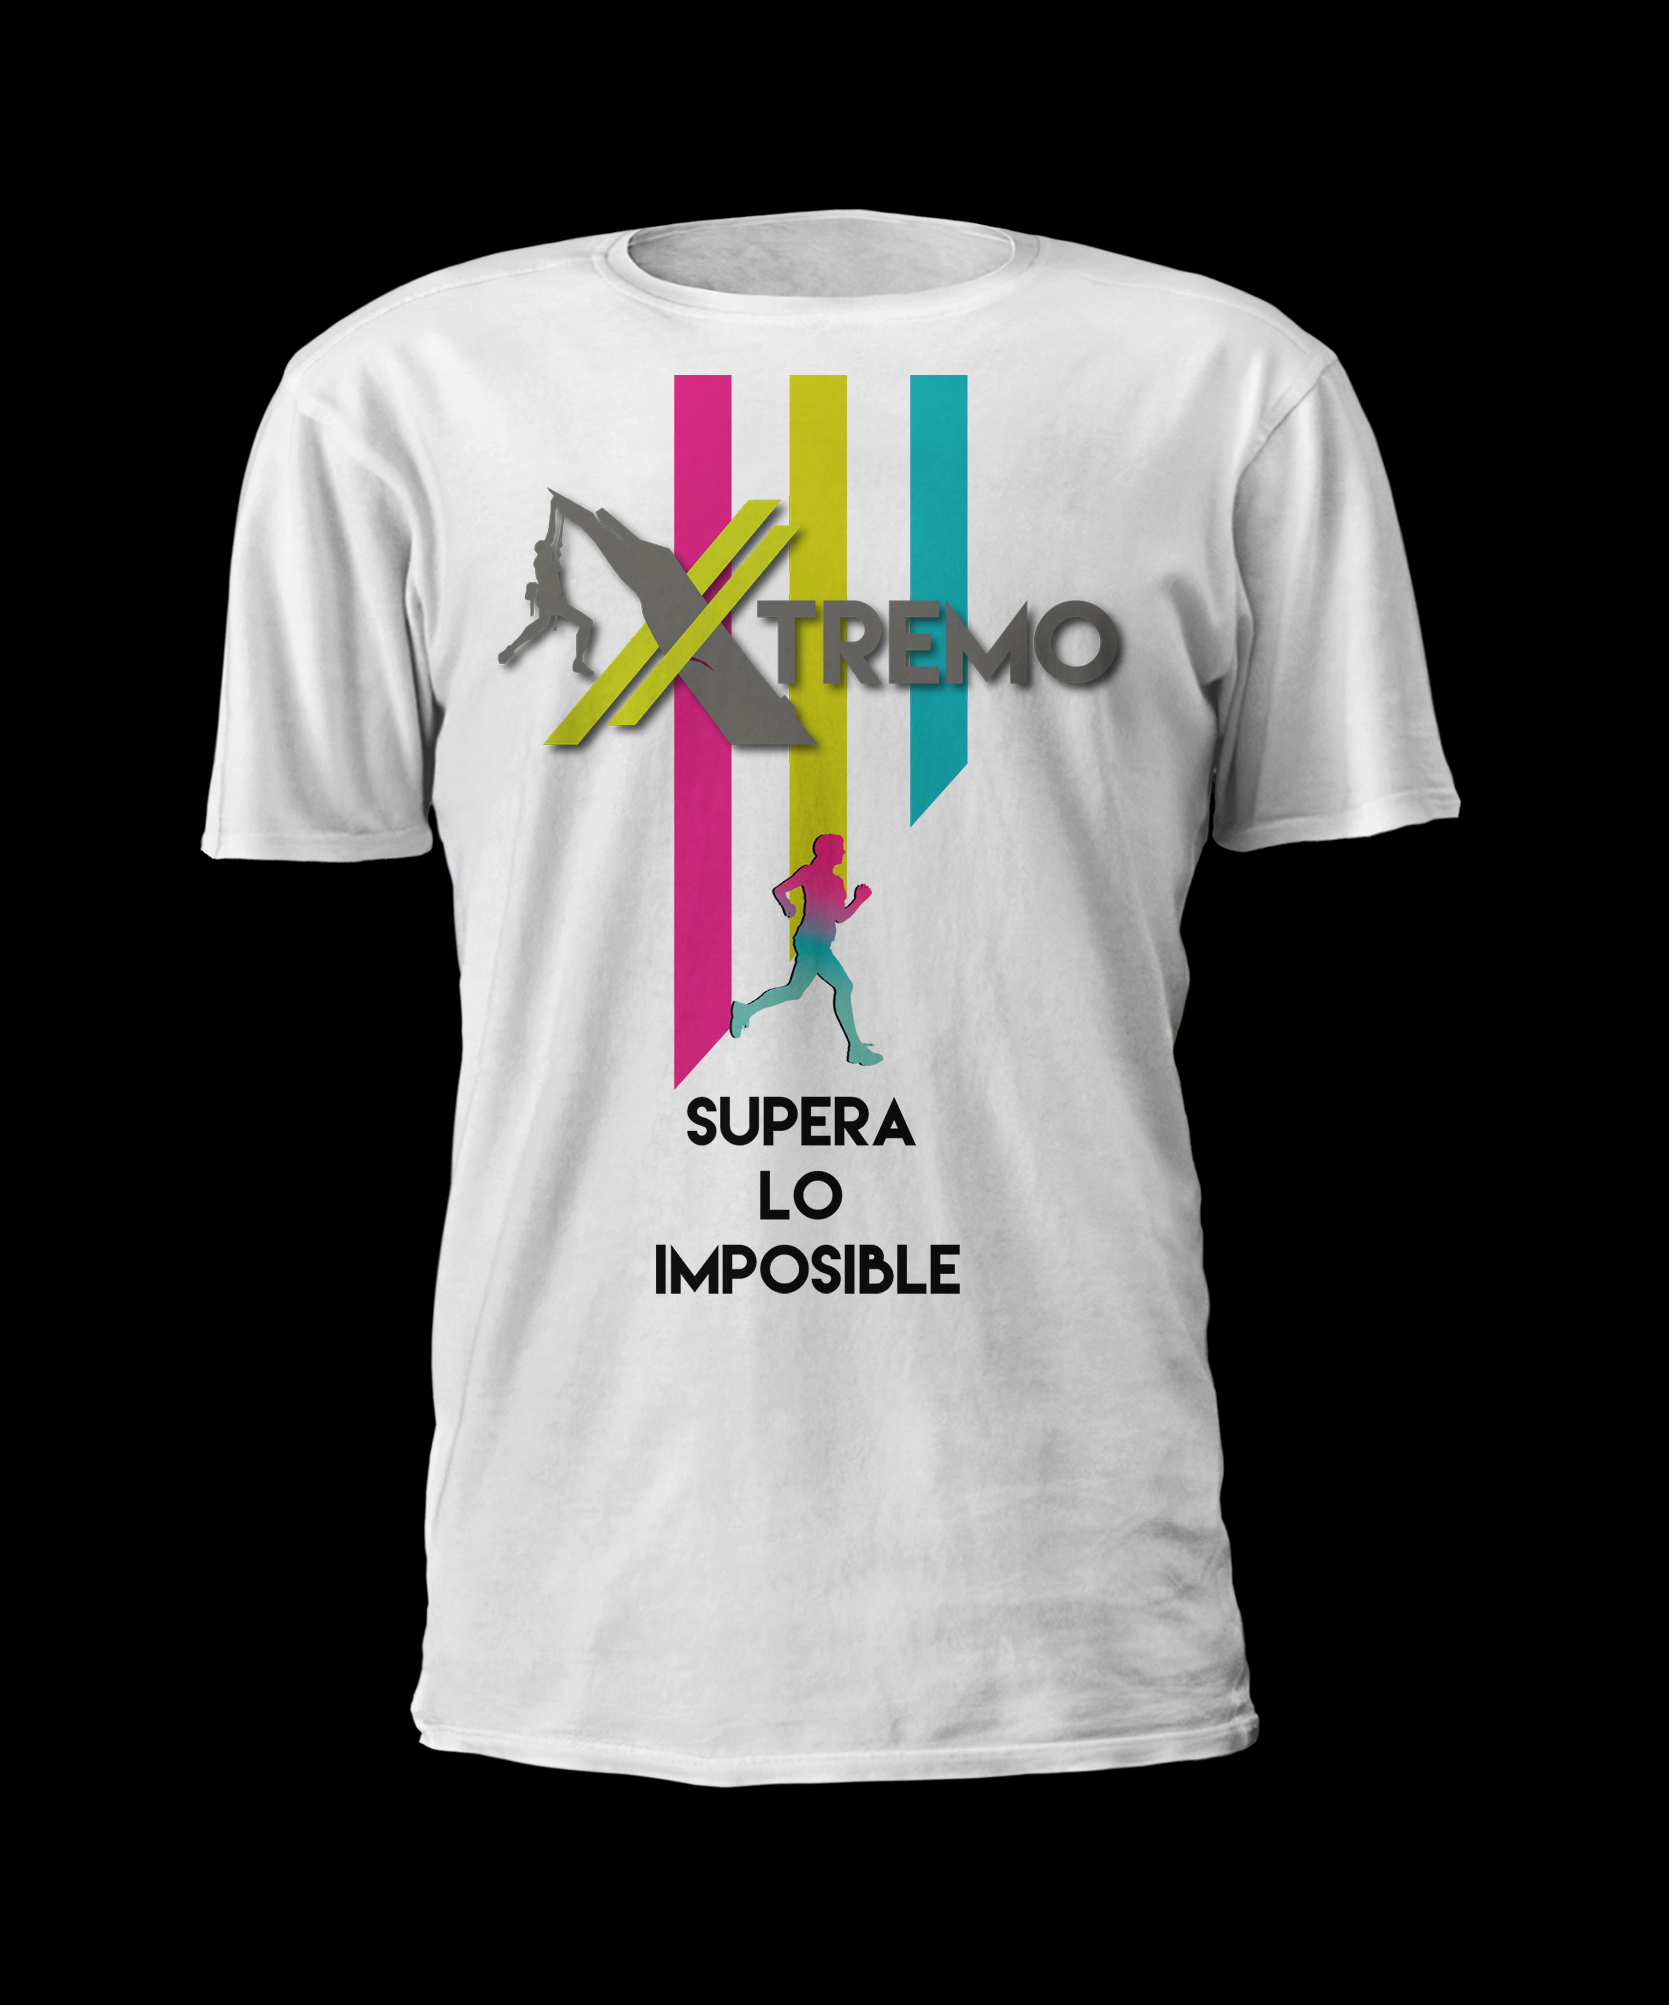 I will design an awesome tshirt